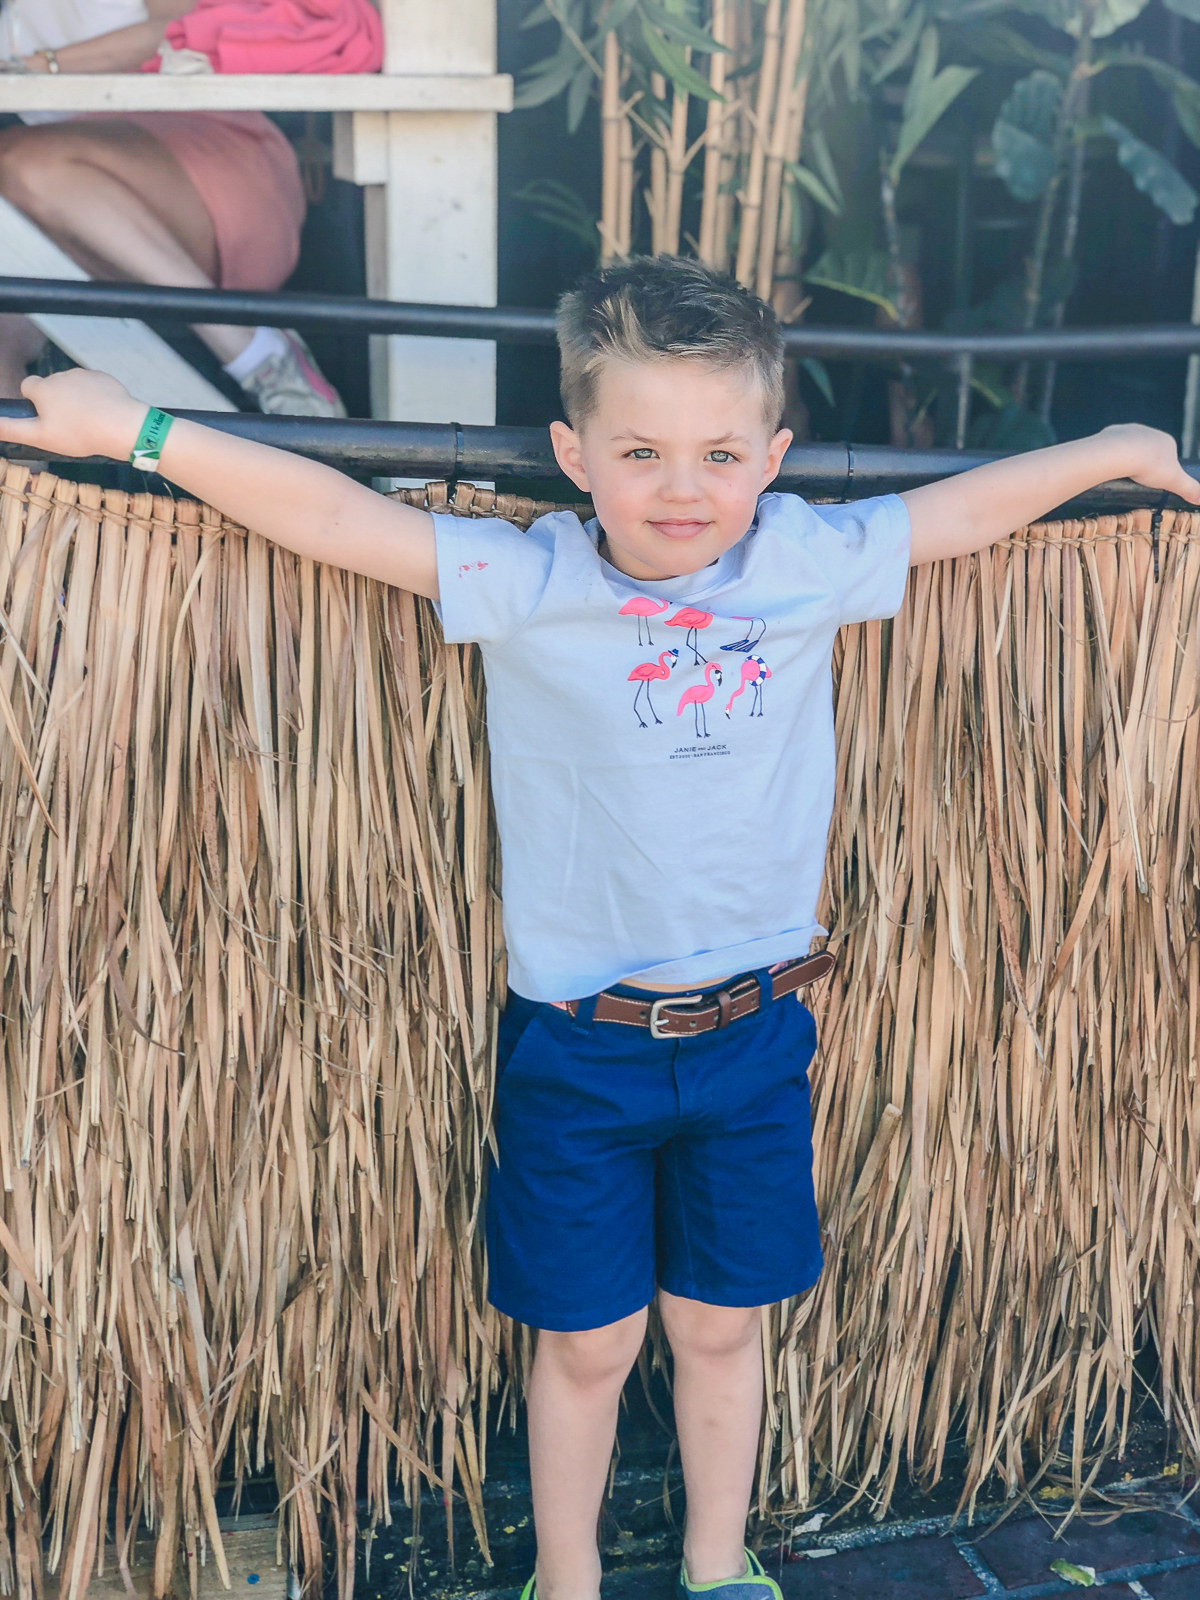 Key West - Things to Do in Key West - Misty Nelson, family travel blogger @frostedevents boy